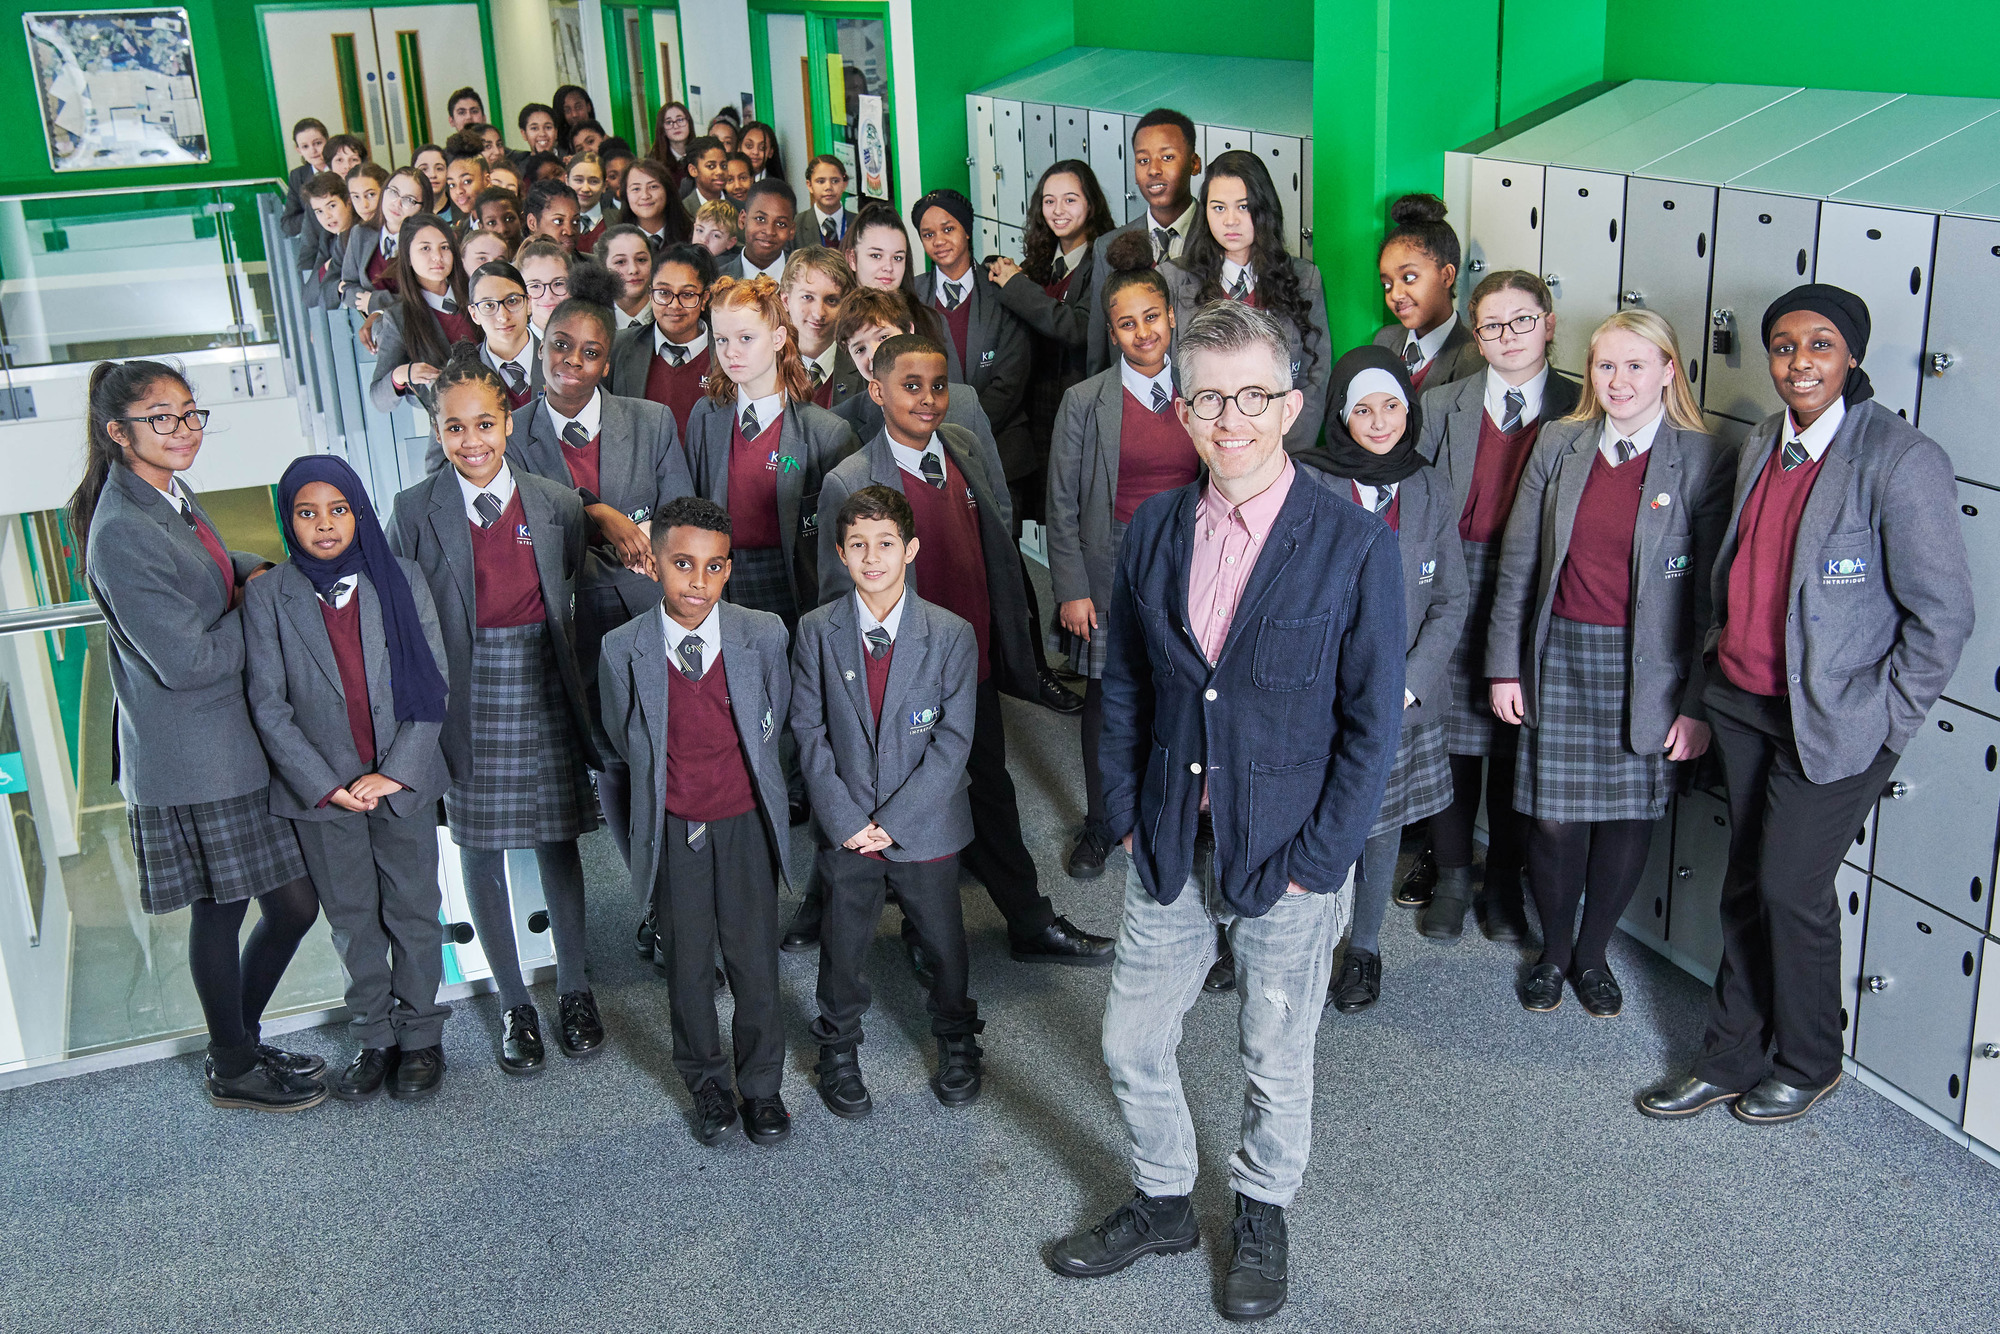 Gareth Malone and the students in The Choir: Our School By The Tower